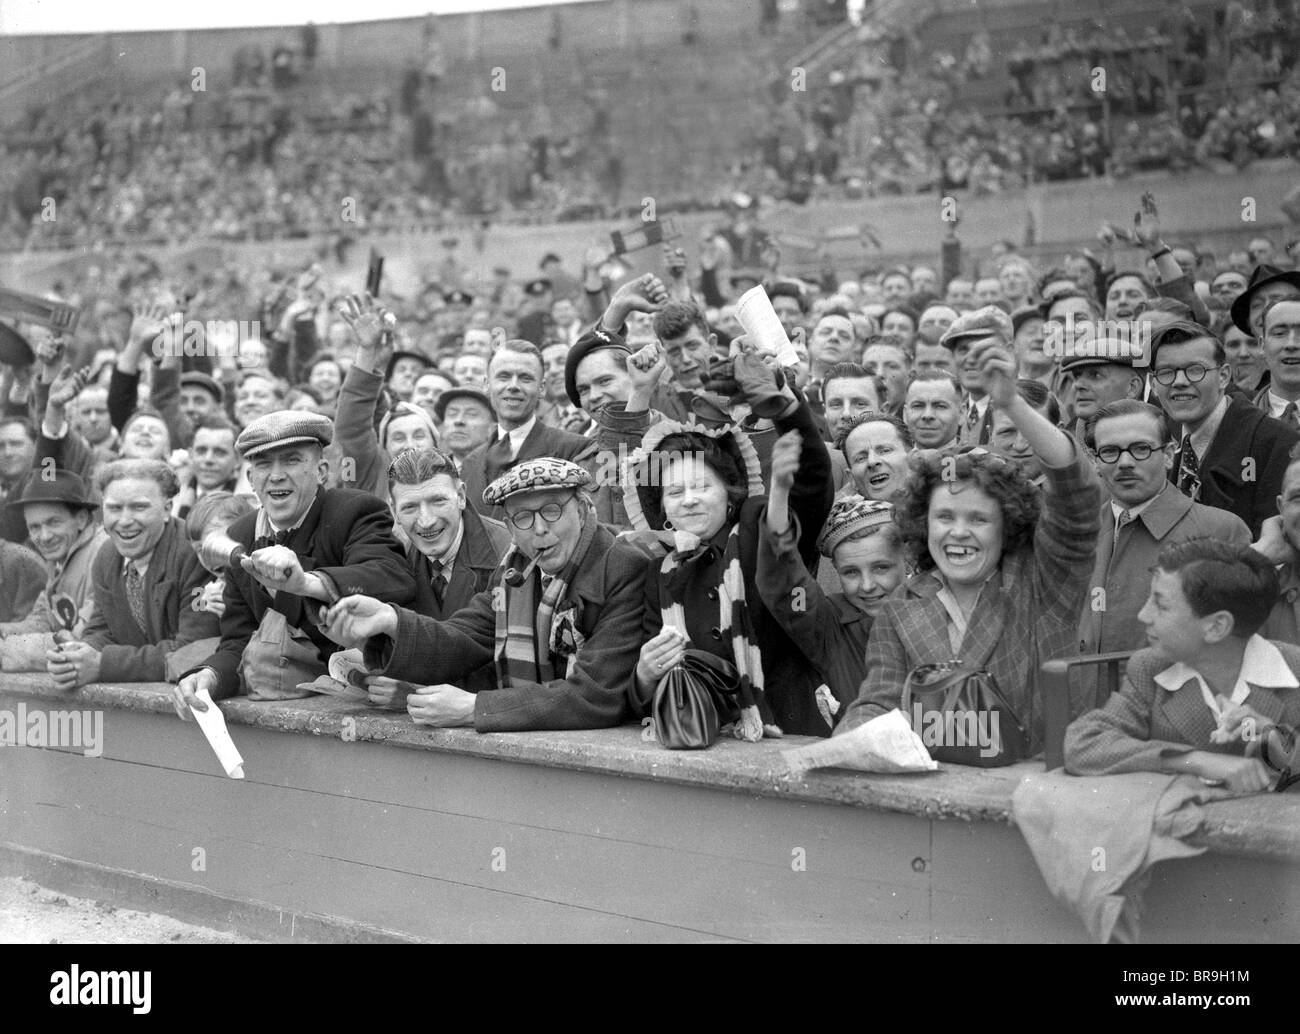 Wolverhampton Wanderers football supporters at the 1949 FA Cup Final at Wembley - Stock Image